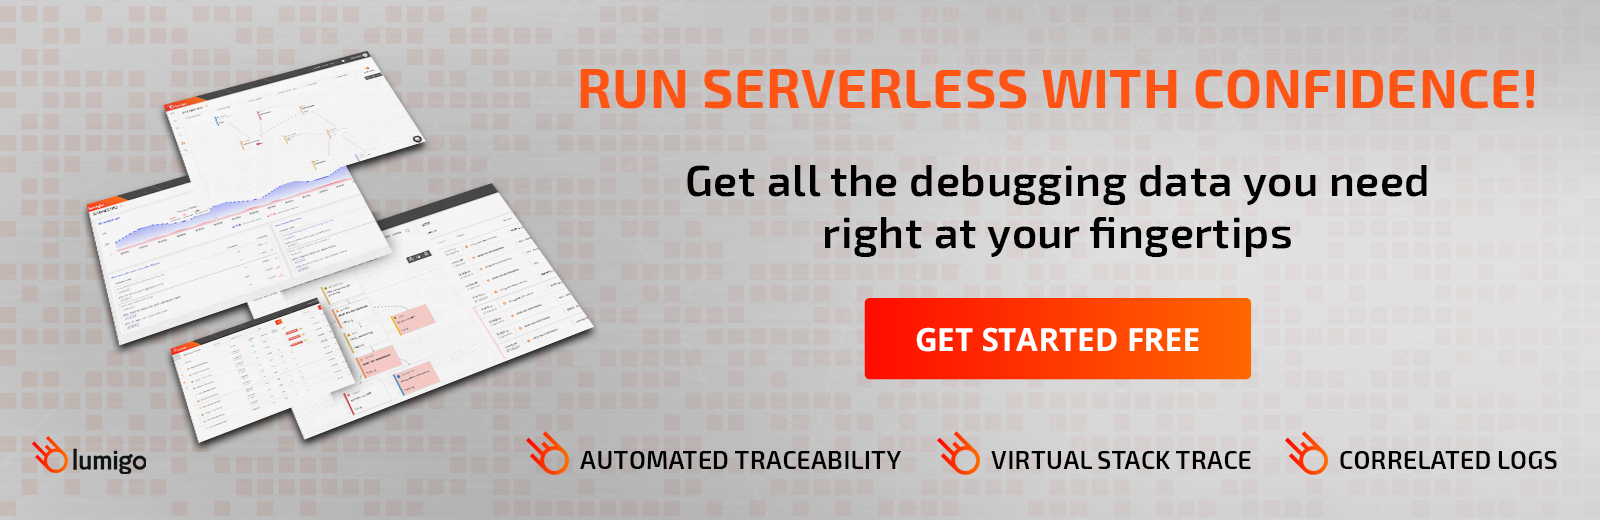 Run serverless with confidence! Start monitoring with Lumigo today - try it free